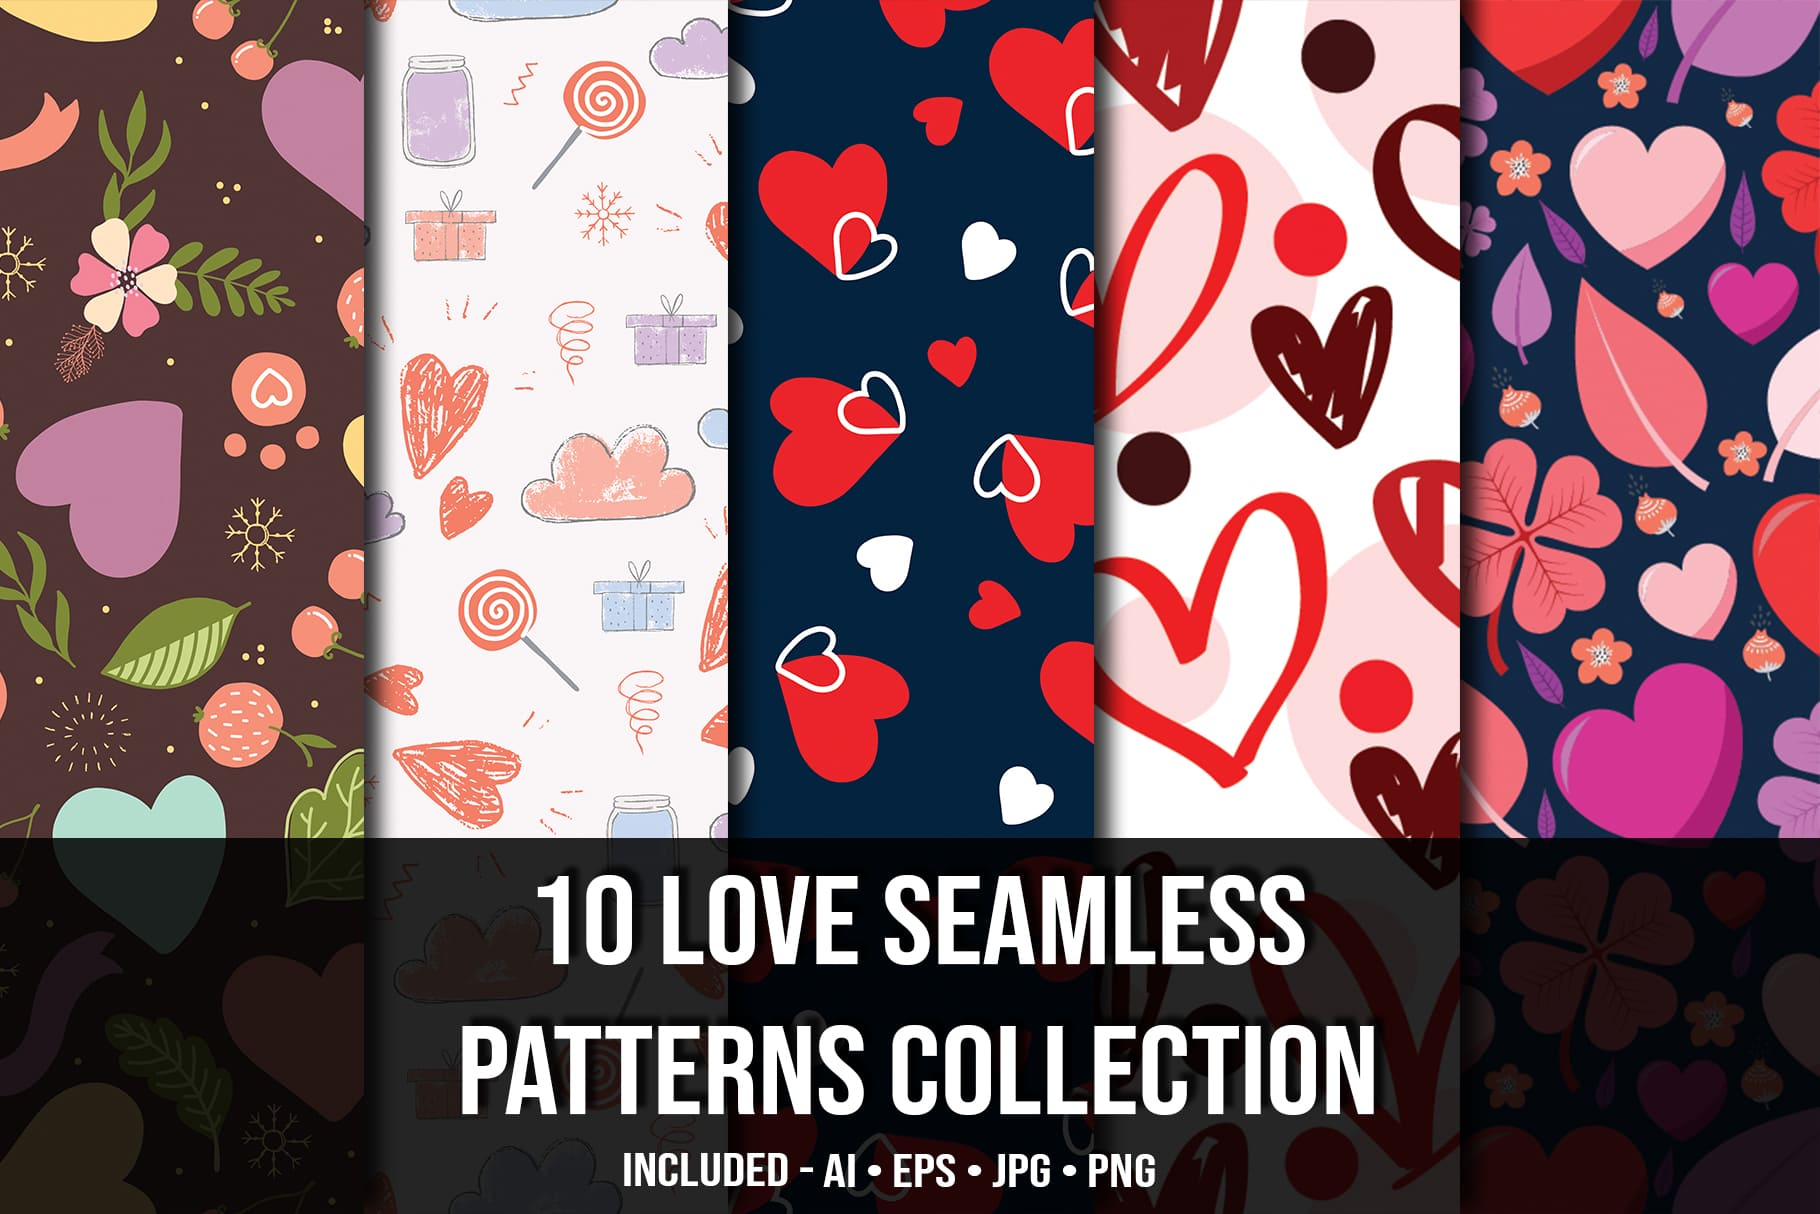 Main image.Love Seamless Patterns Collection.